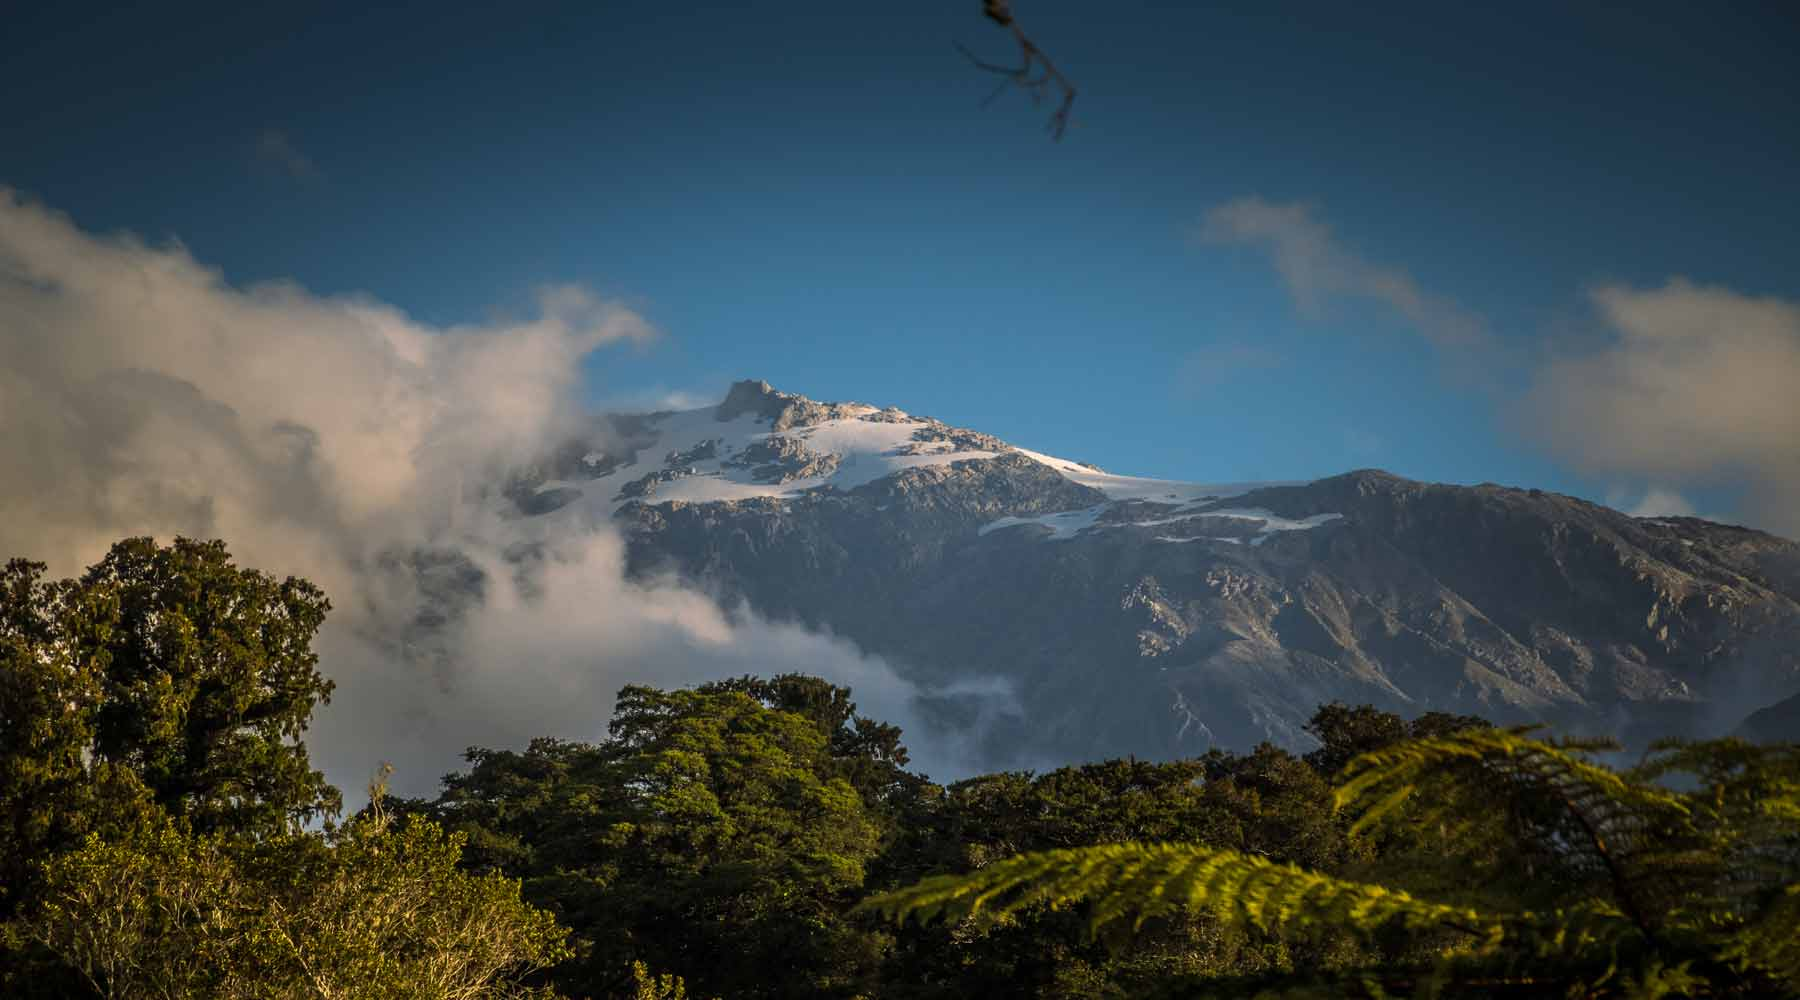 Snow capped mountain with pink tinged clouds above New Zealand native bush